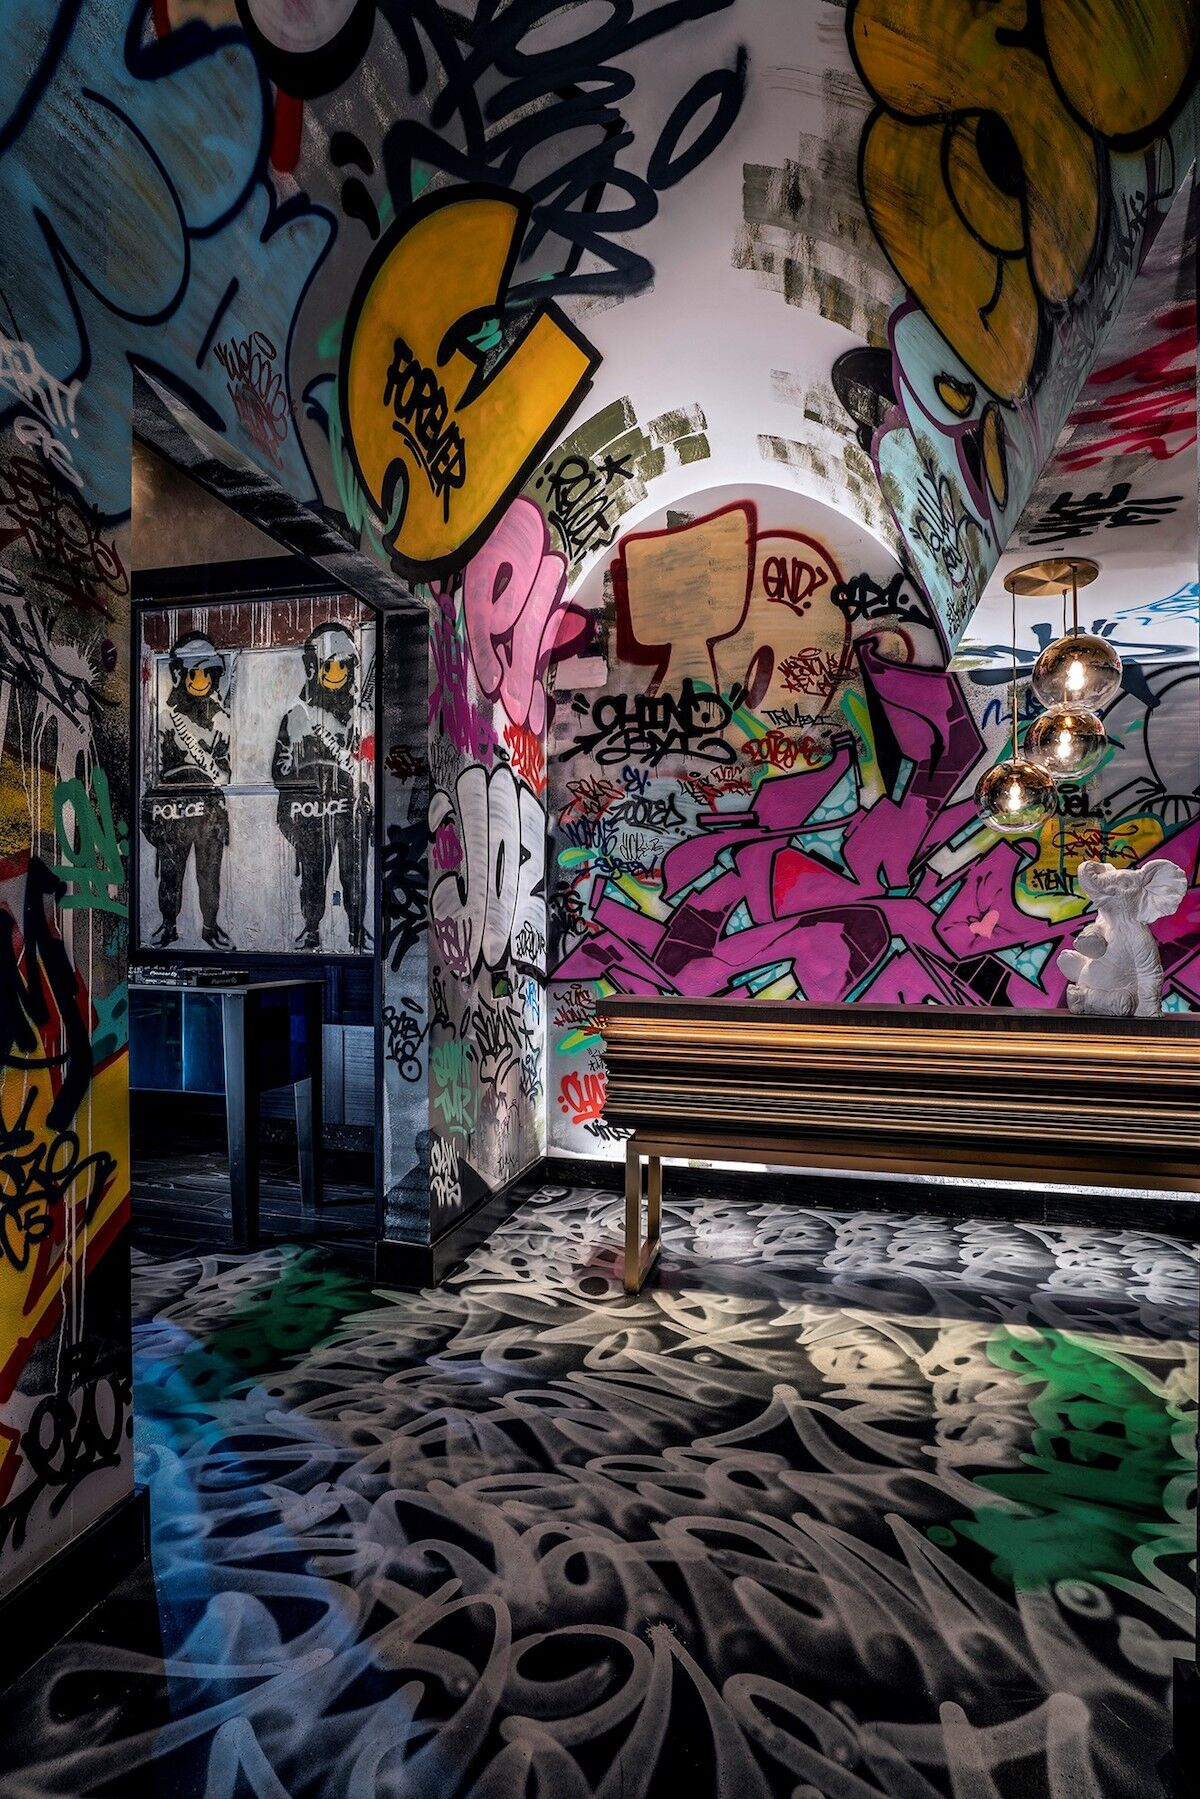 Banksy, Smiley Coppers Panel I, 2002, on view in the Green St. Kitchen at the Palms Casino Resort. Photo by Clint Jenkins.